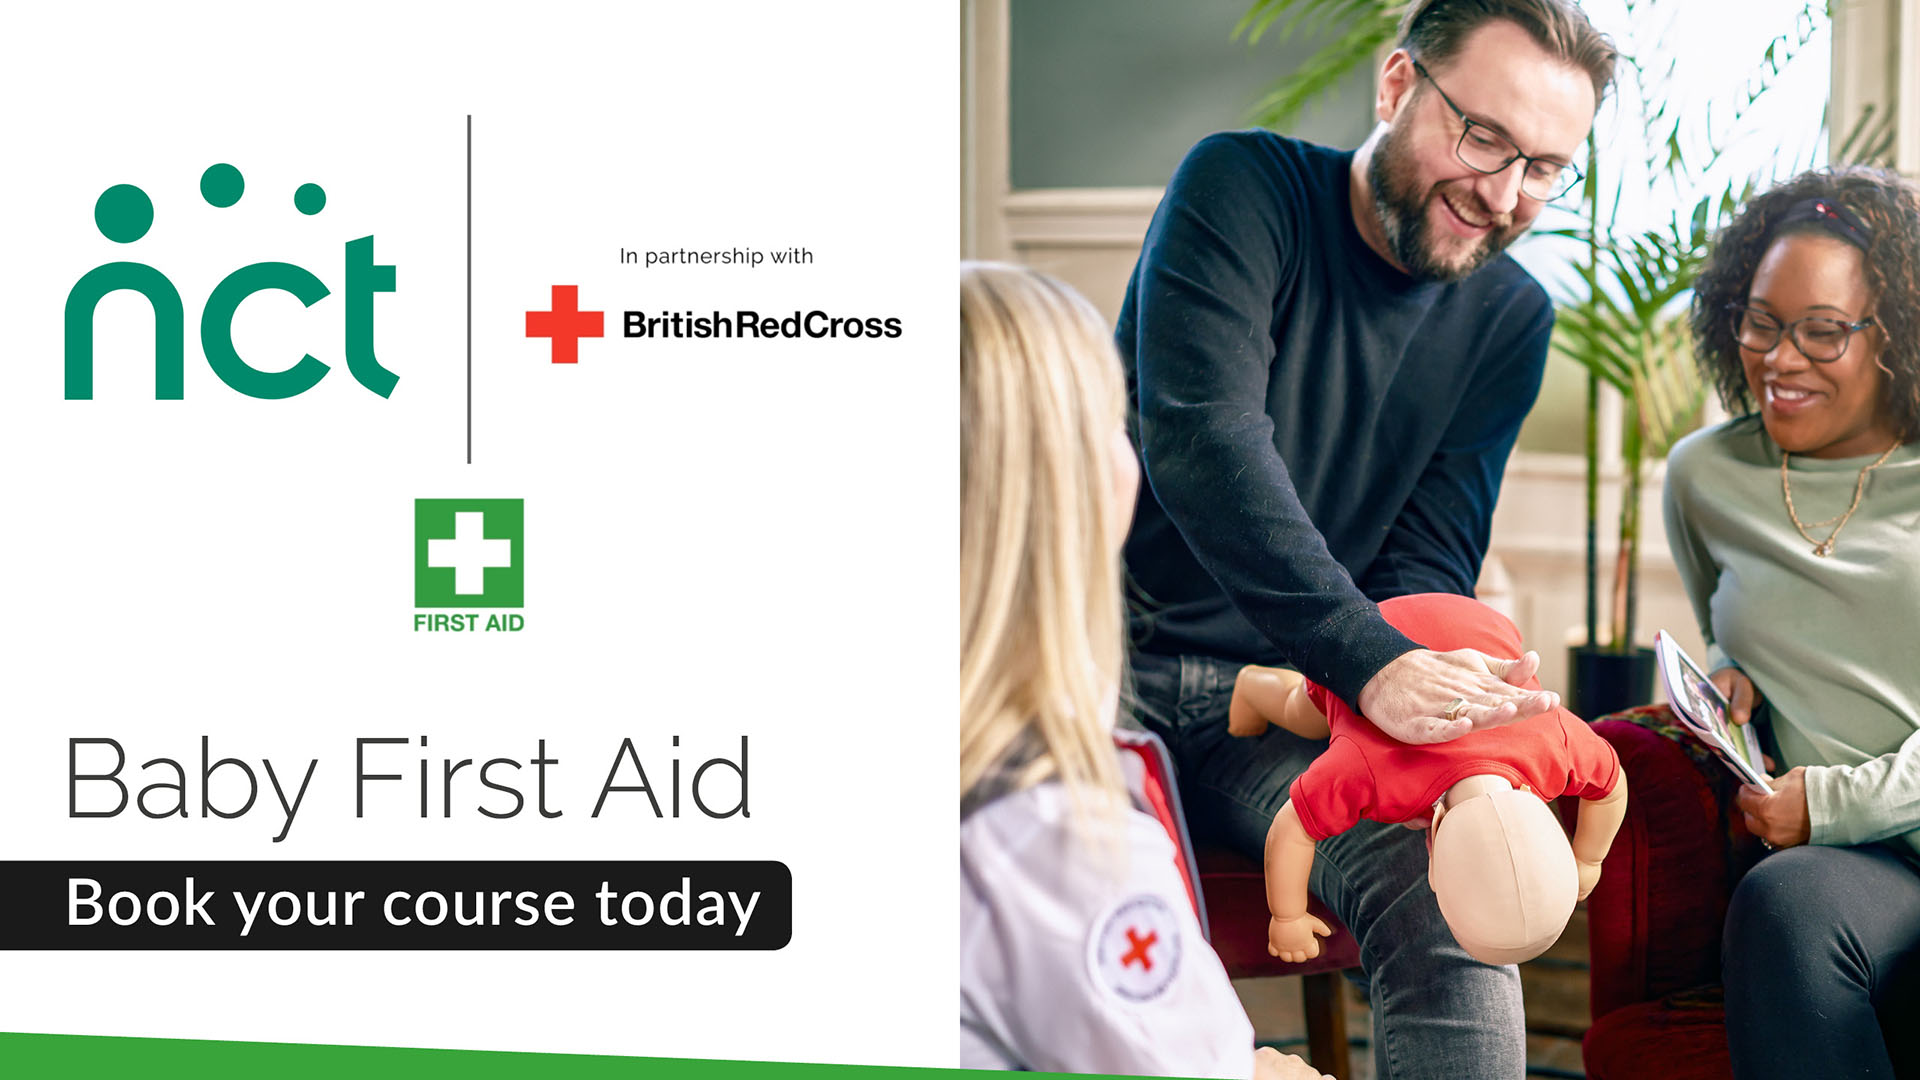 First Aid Course Baby Choking Image